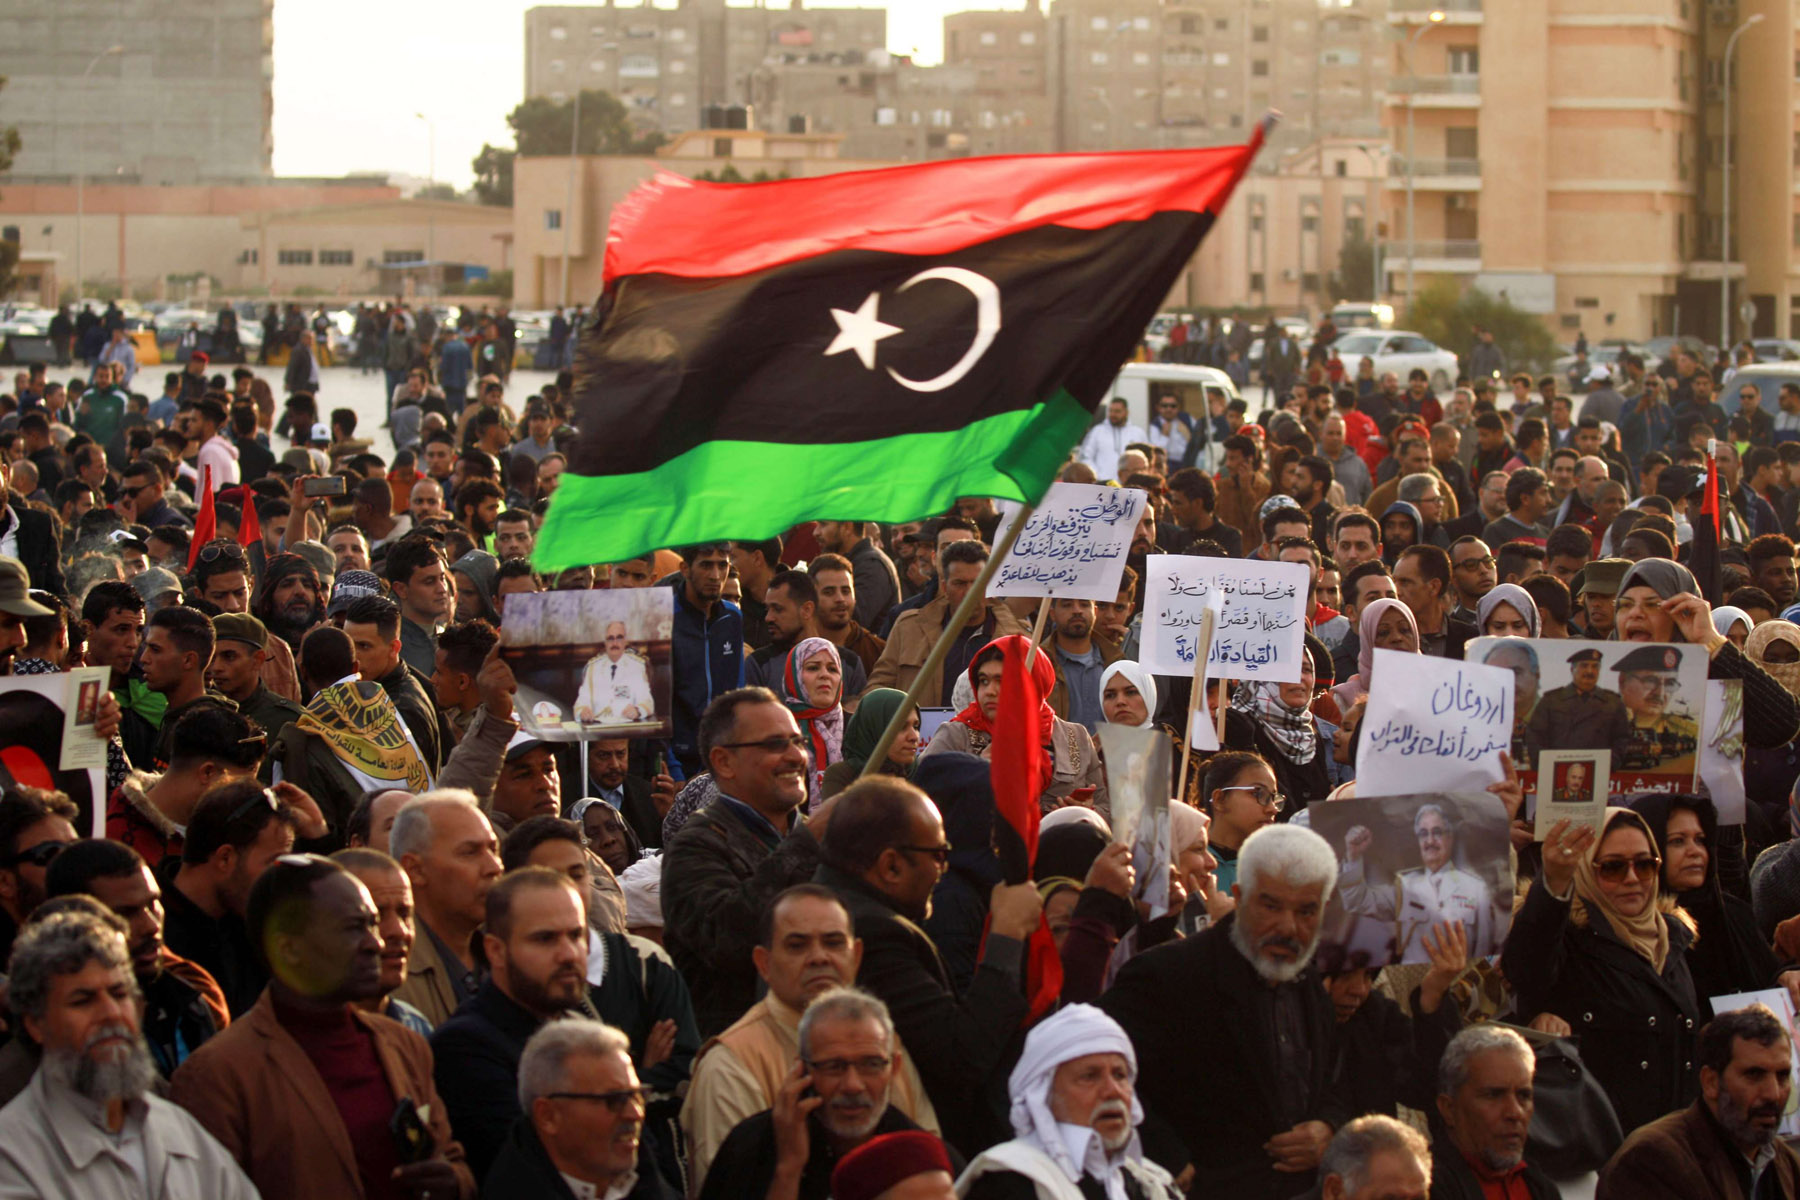 A file picture shows supporters of Libyan National Army (LNA) commander Khalifa Haftar as they take part in a demonstration in the coastal city of Benghazi in eastern Libya, against Turkish intervention in the country's affairs last February 14. (AFP)